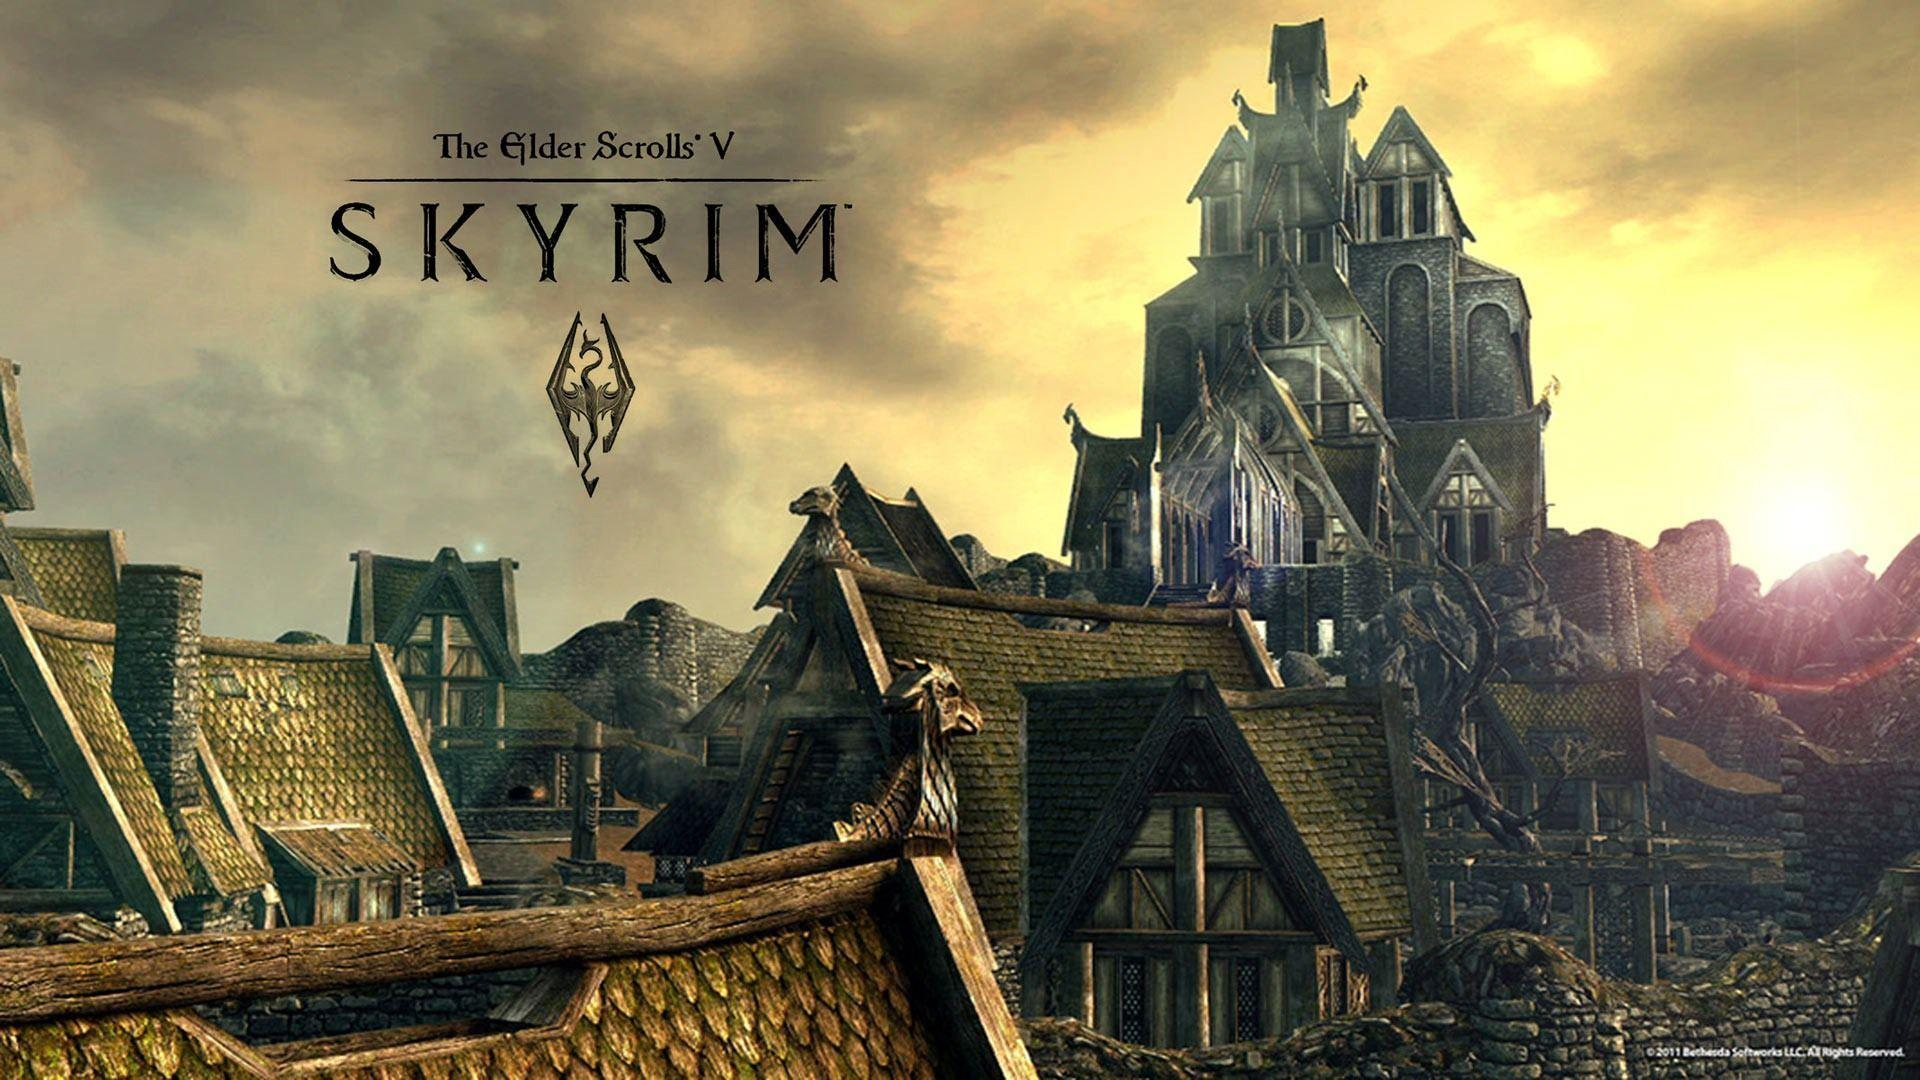 hd skyrim wallpapers 1920x1080, 1920x1080 skyrim wallpaper